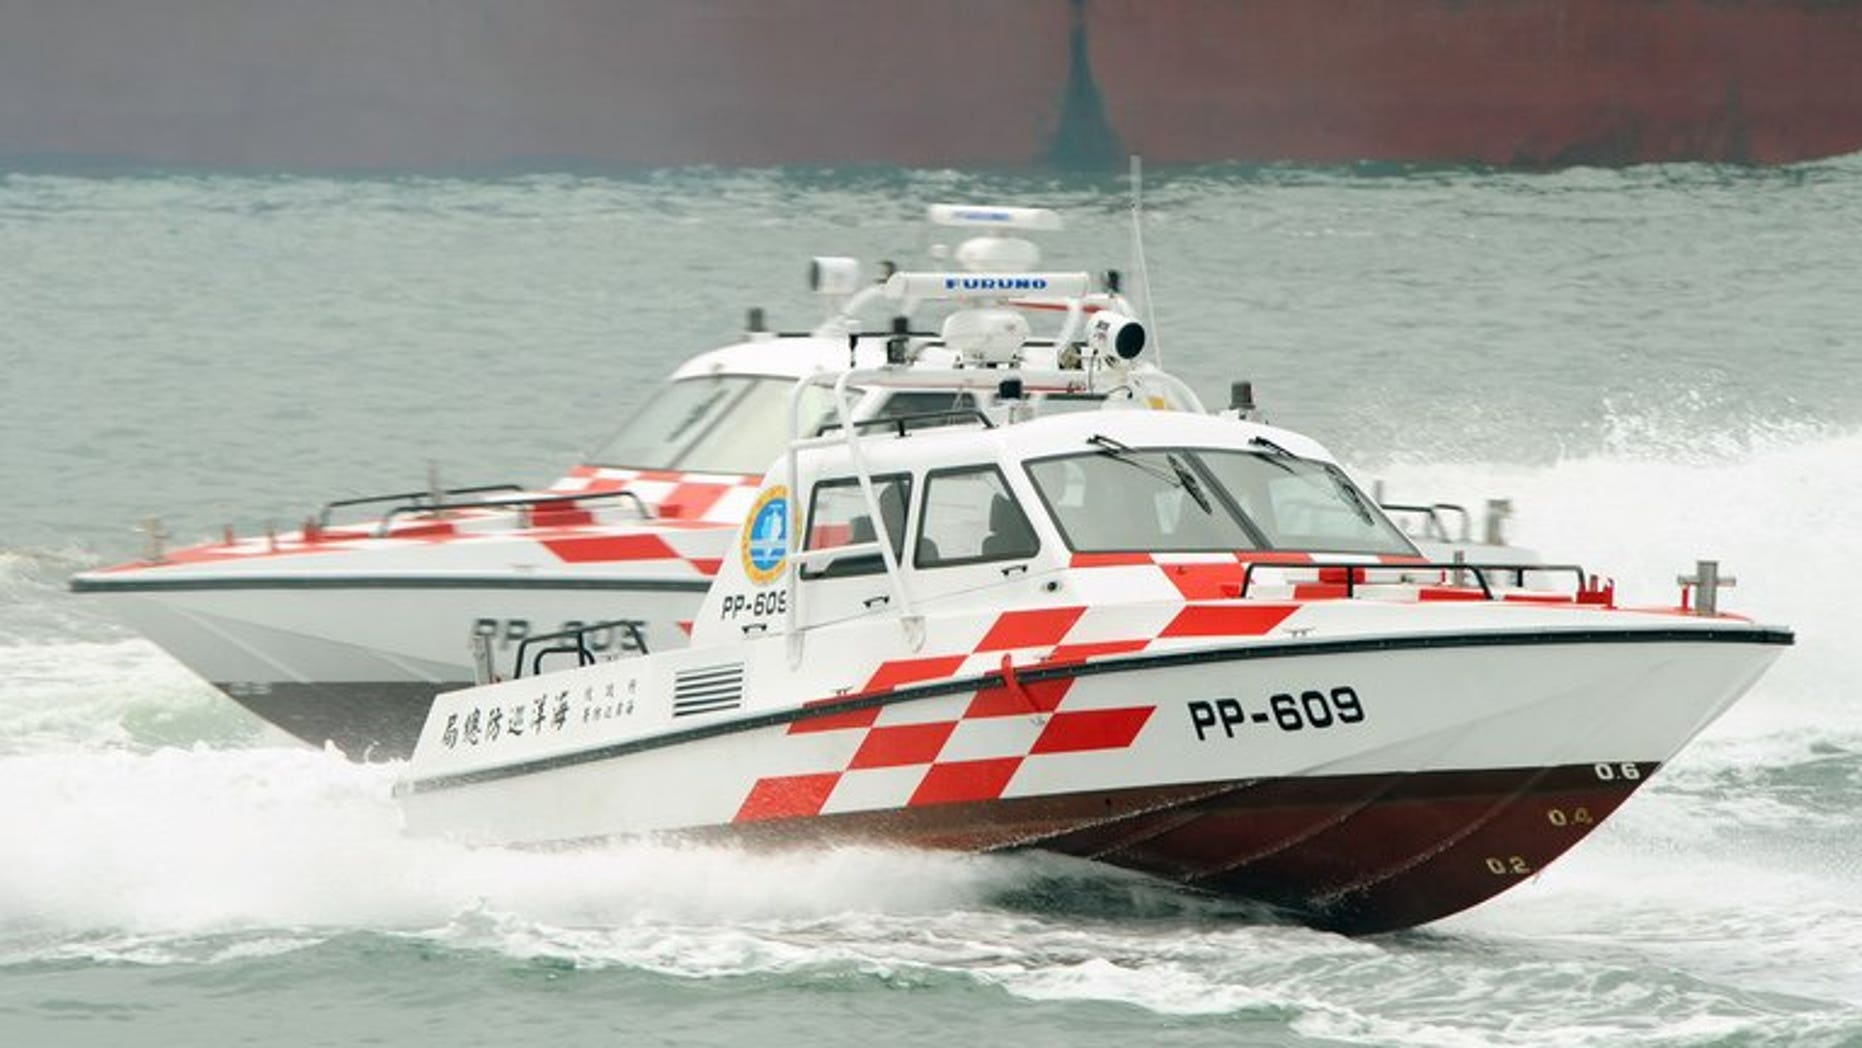 In this file photo, Taiwan coastguard's speed-boats demonstrate their combat skills during a drill near New Taipei City, on June 29, 2011. The coastguard on Saturday raided a fishing vessel thousands of miles offshore, arresting nine Indonesian crew suspected of murdering their Taiwanese captain and chief engineer, according to officials.